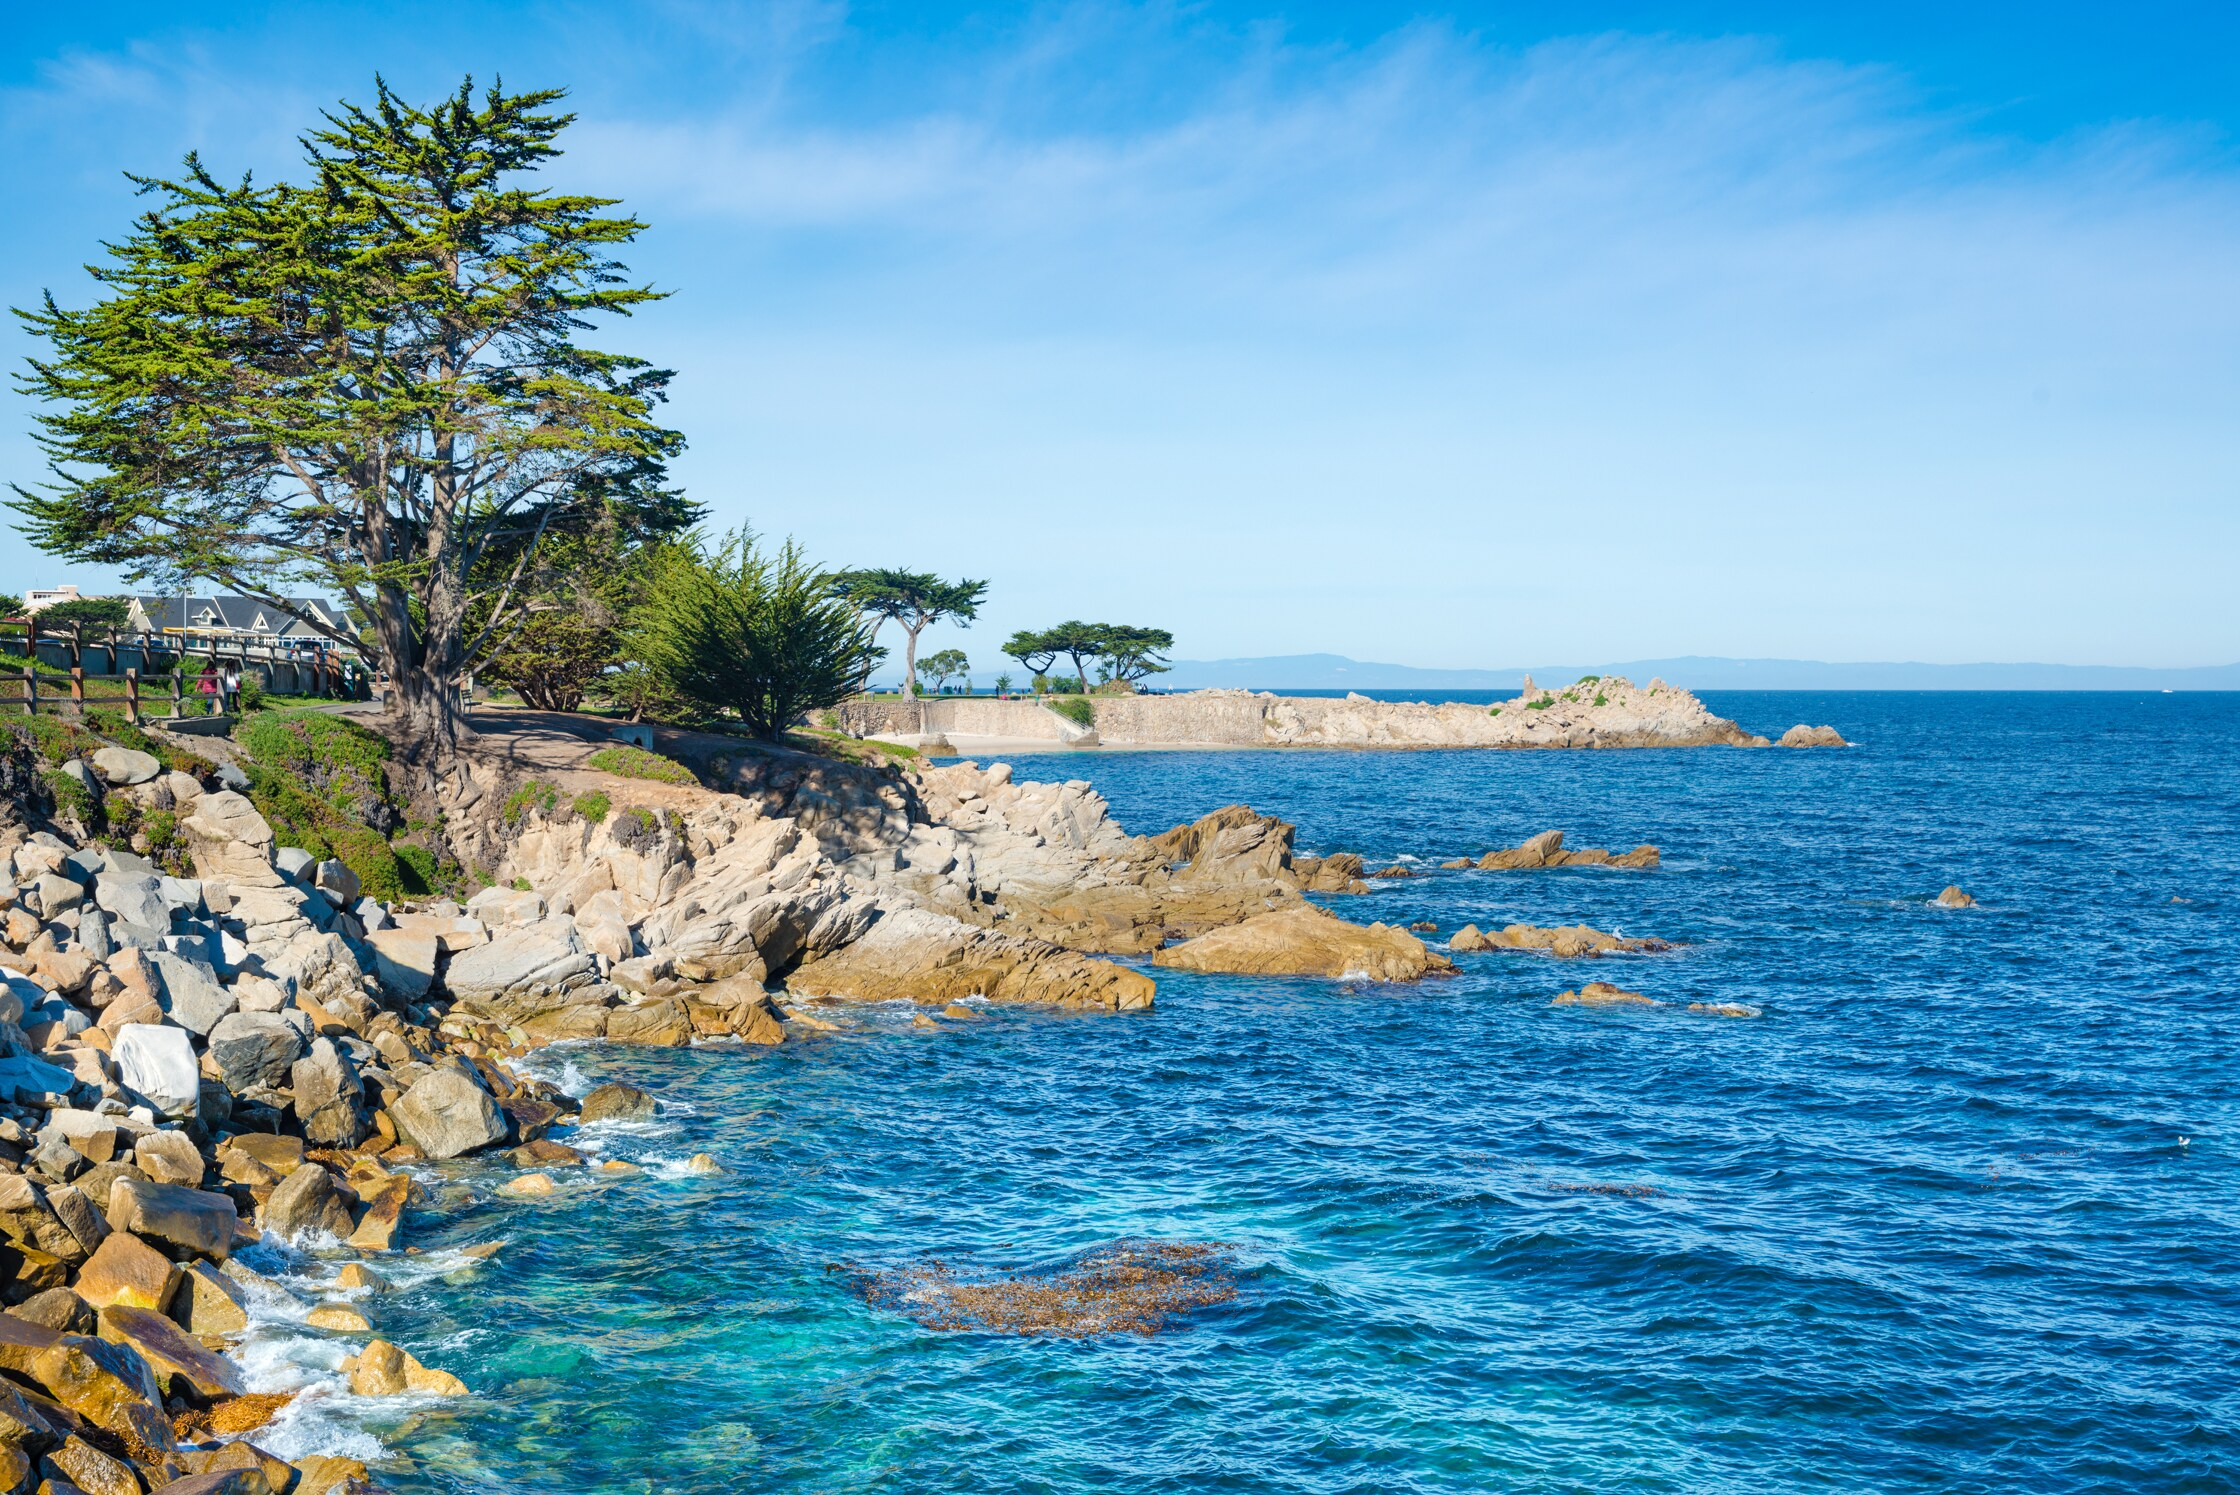 Enjoy the beautiful waters of Monterey Bay.